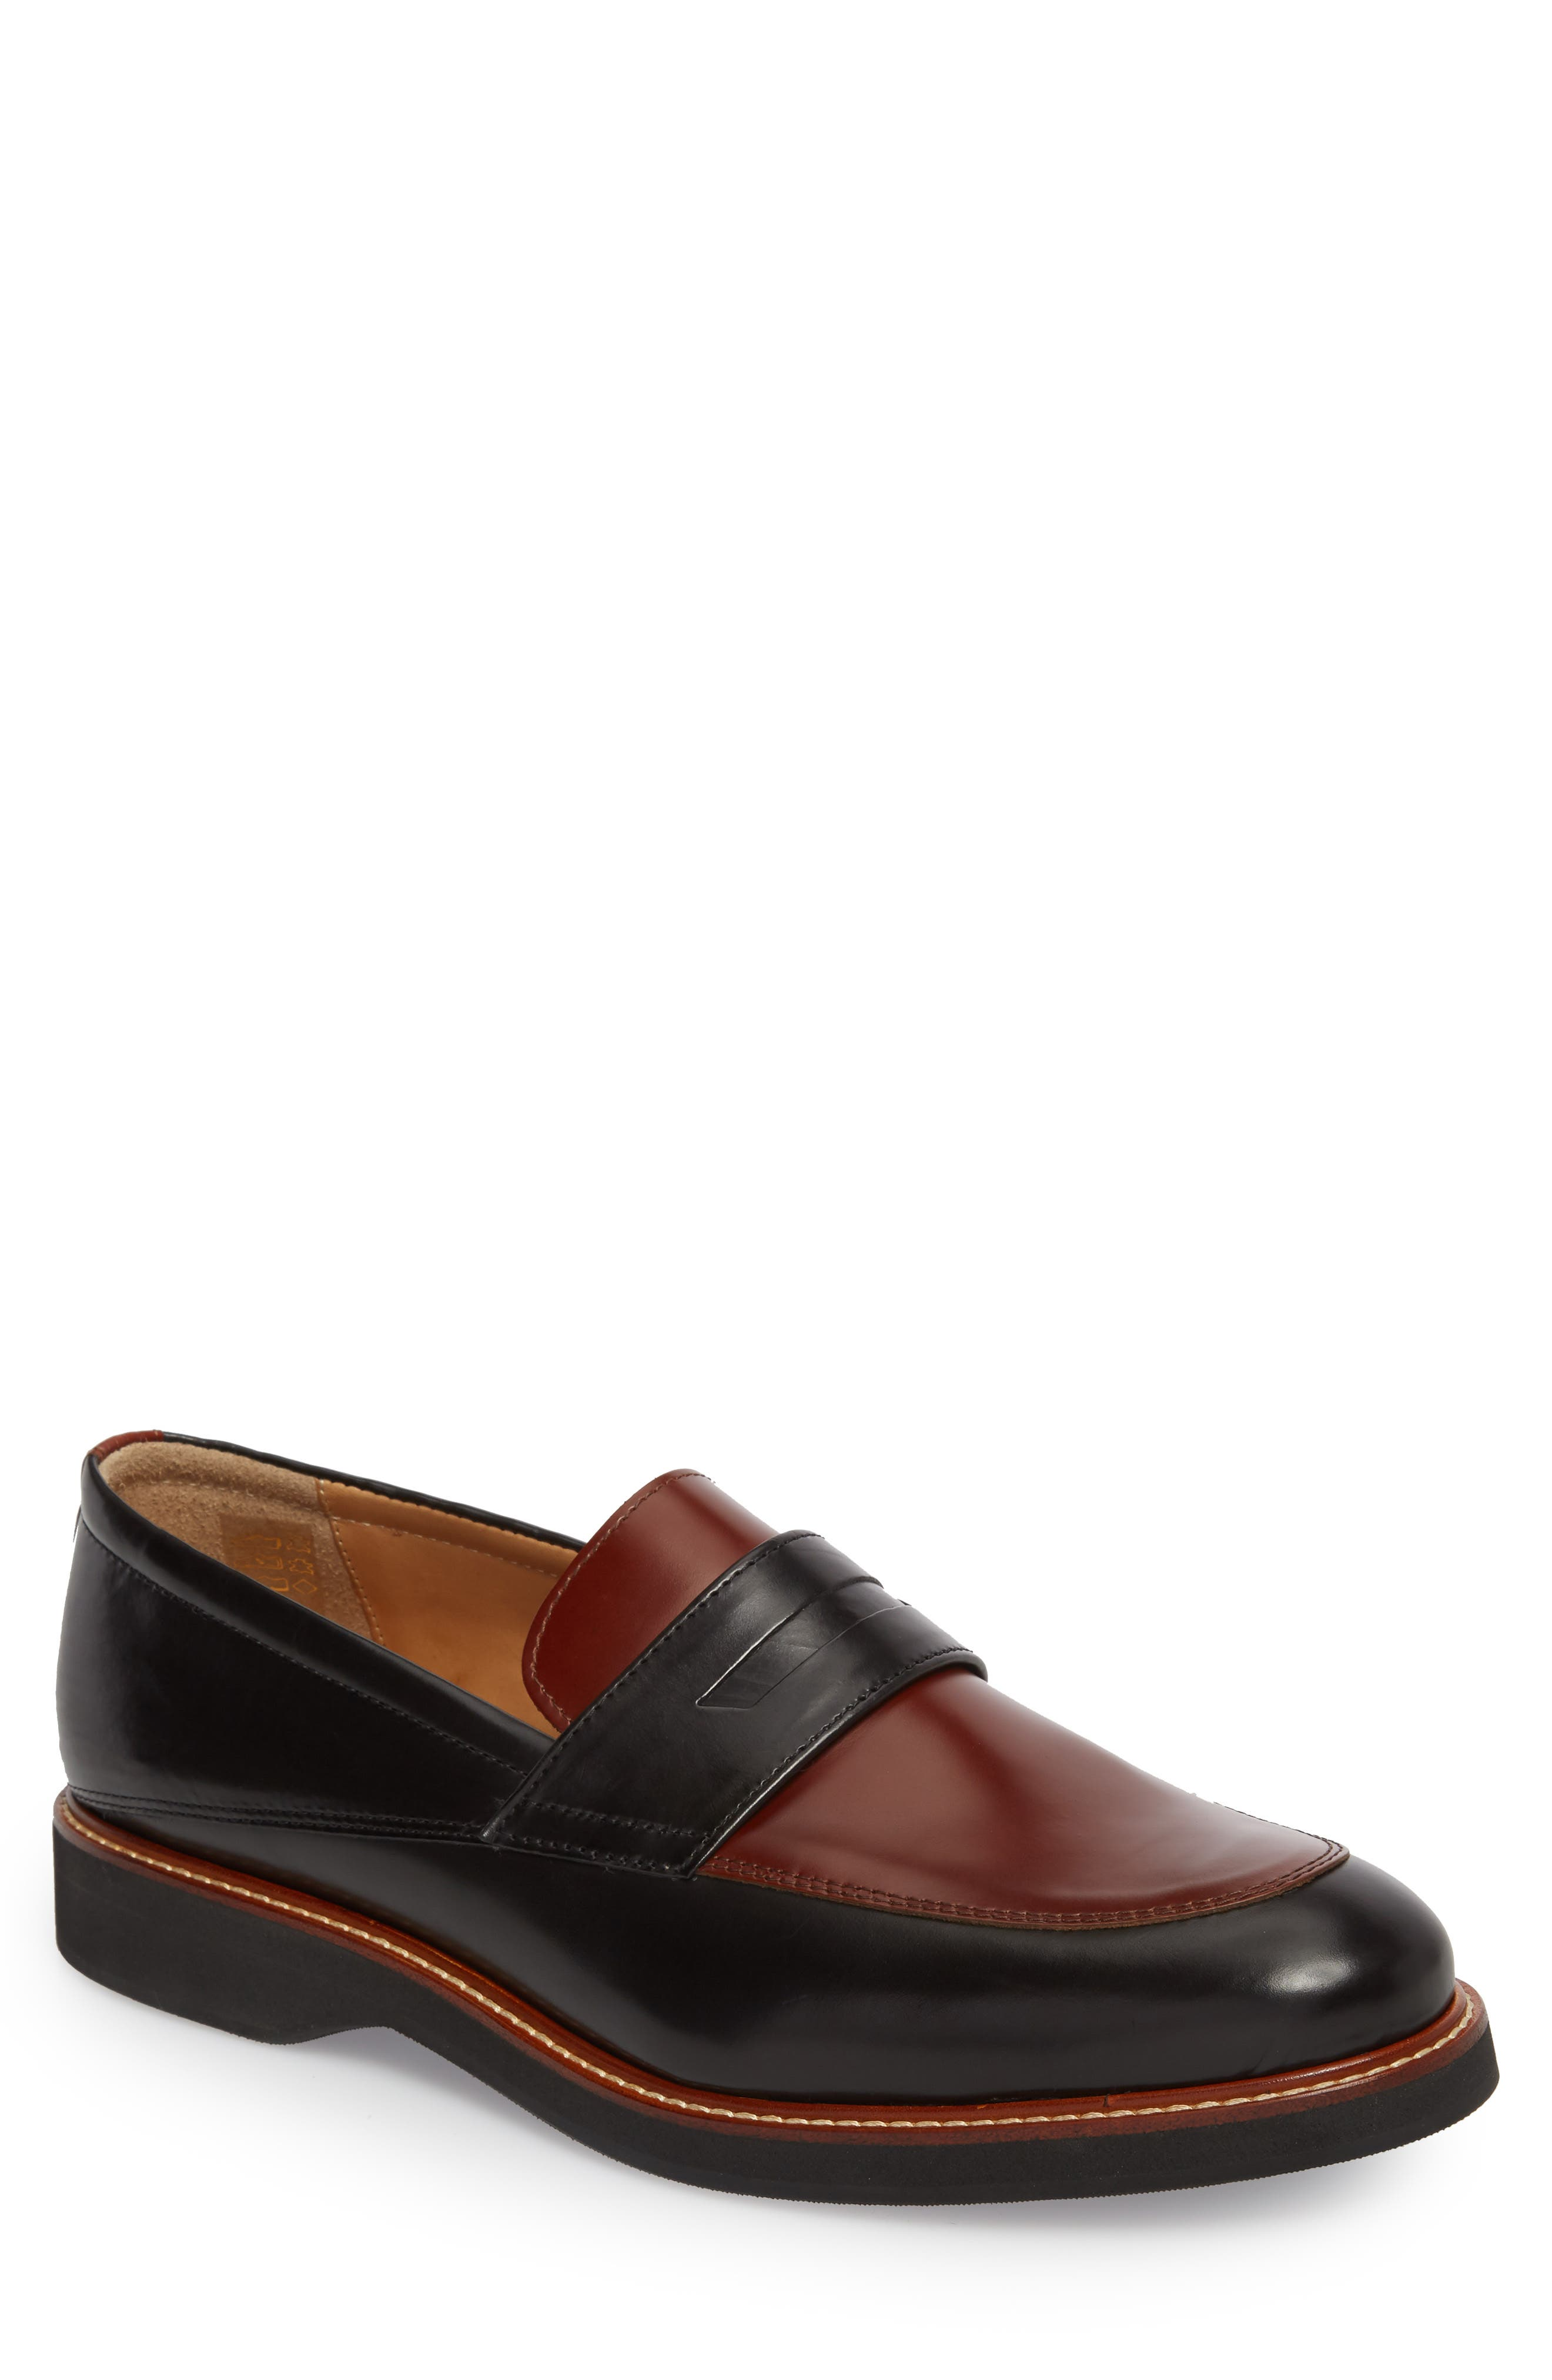 Marcus Penny Loafer,                             Main thumbnail 1, color,                             010